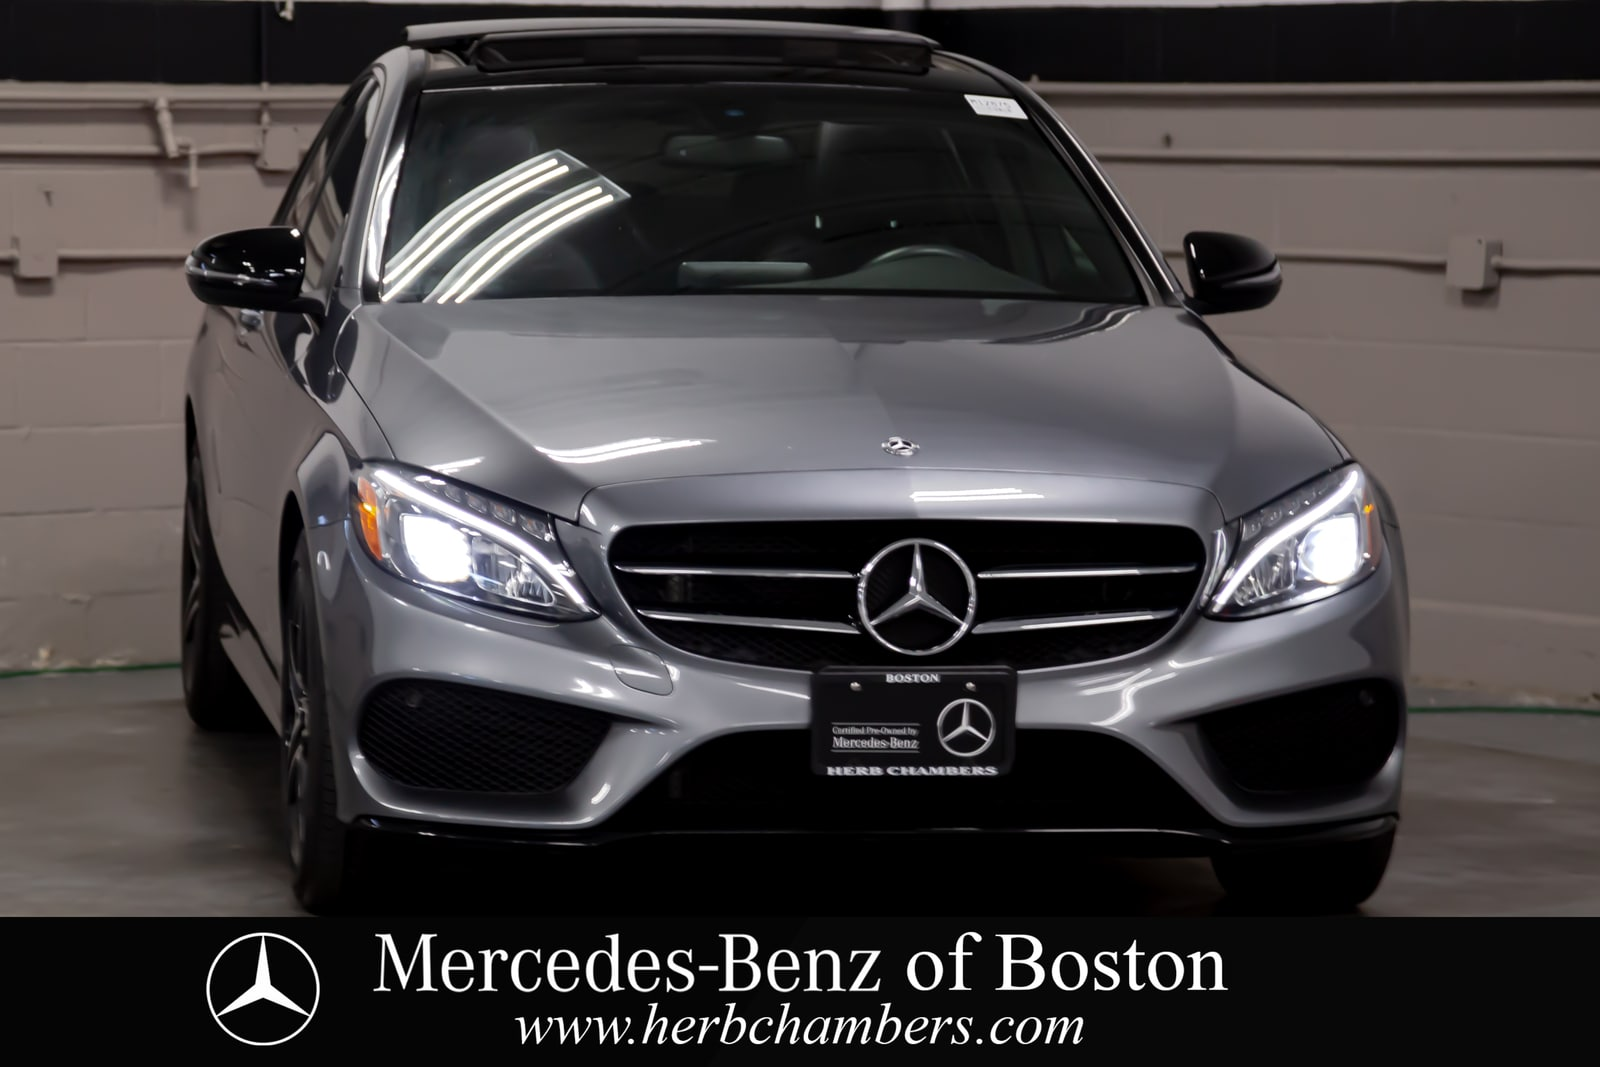 used 2018 Mercedes-Benz C-Class car, priced at $32,298